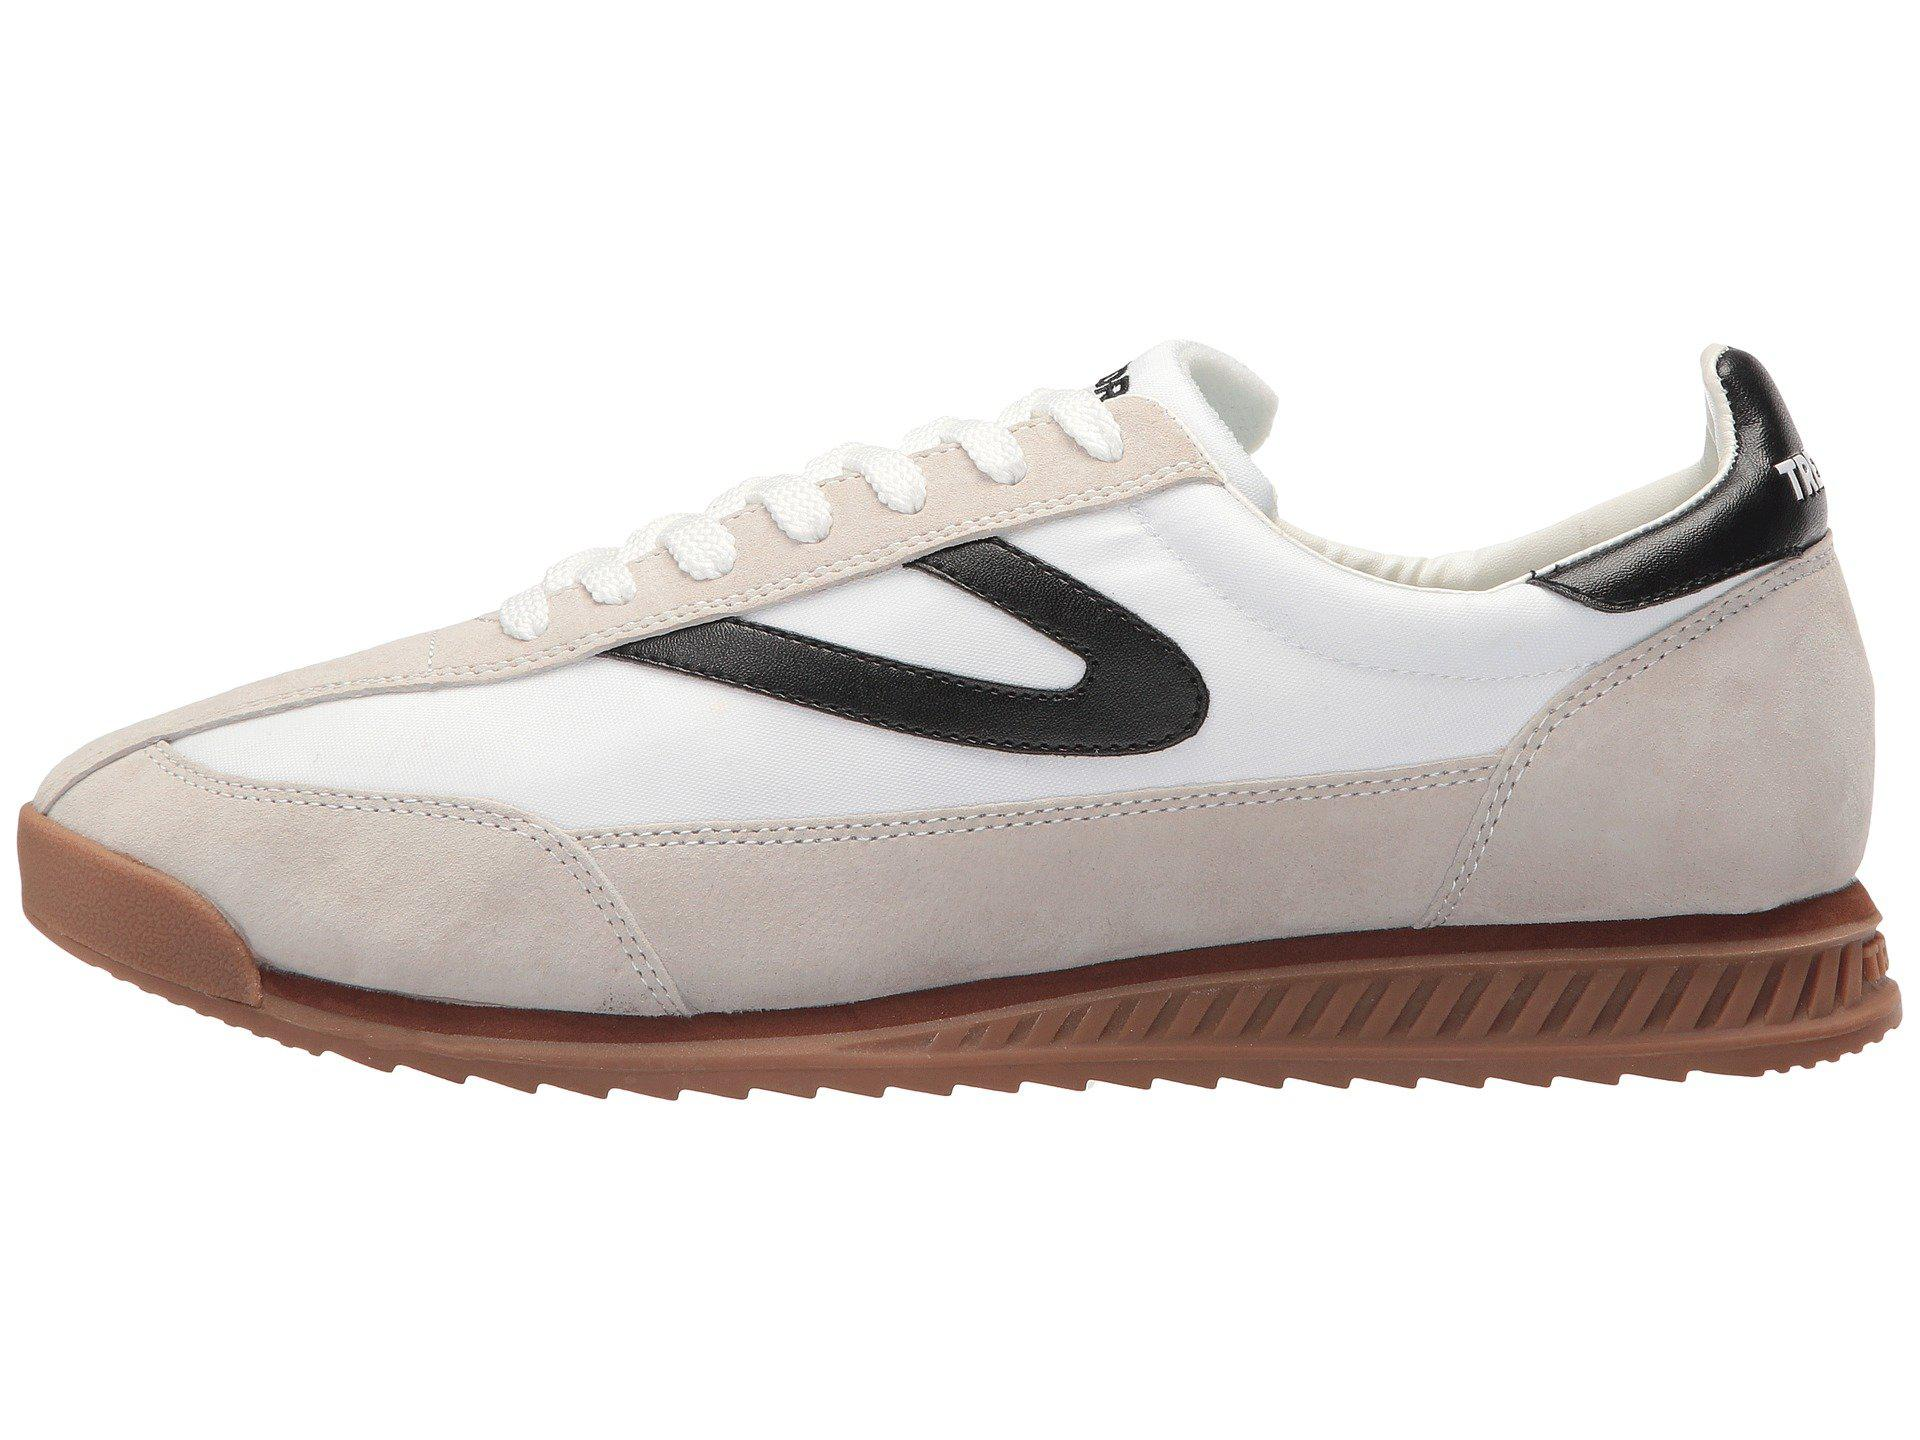 Tretorn Suede Rawlins 7 In White For Men Lyst